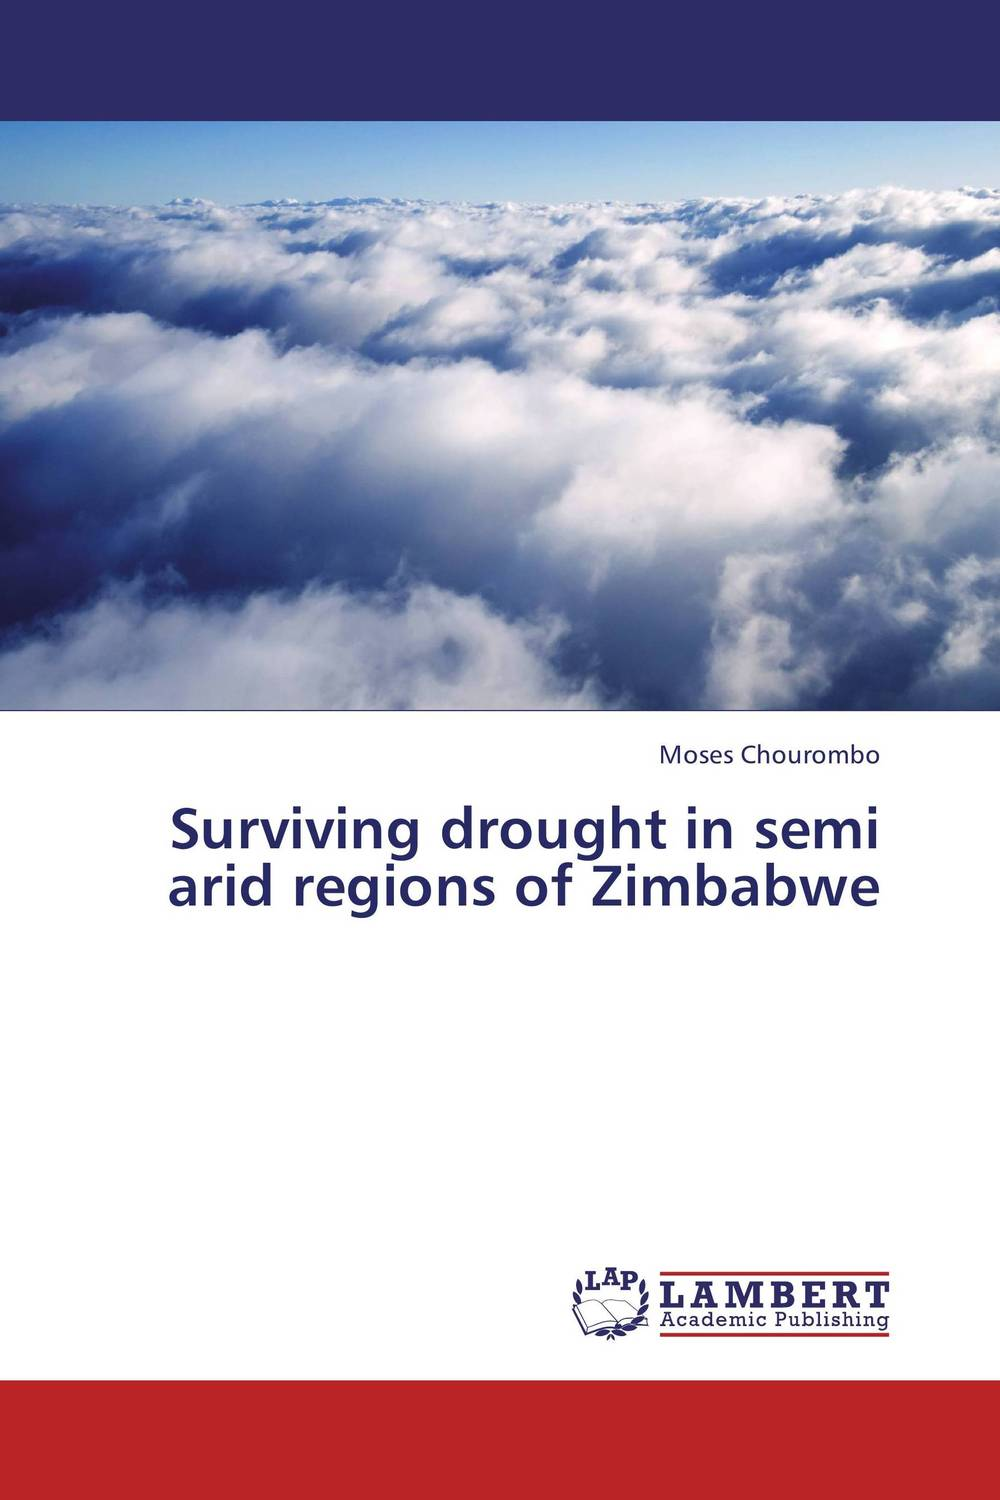 Surviving drought in semi arid regions of Zimbabwe ways of curbing tax evasion in zimbabwe